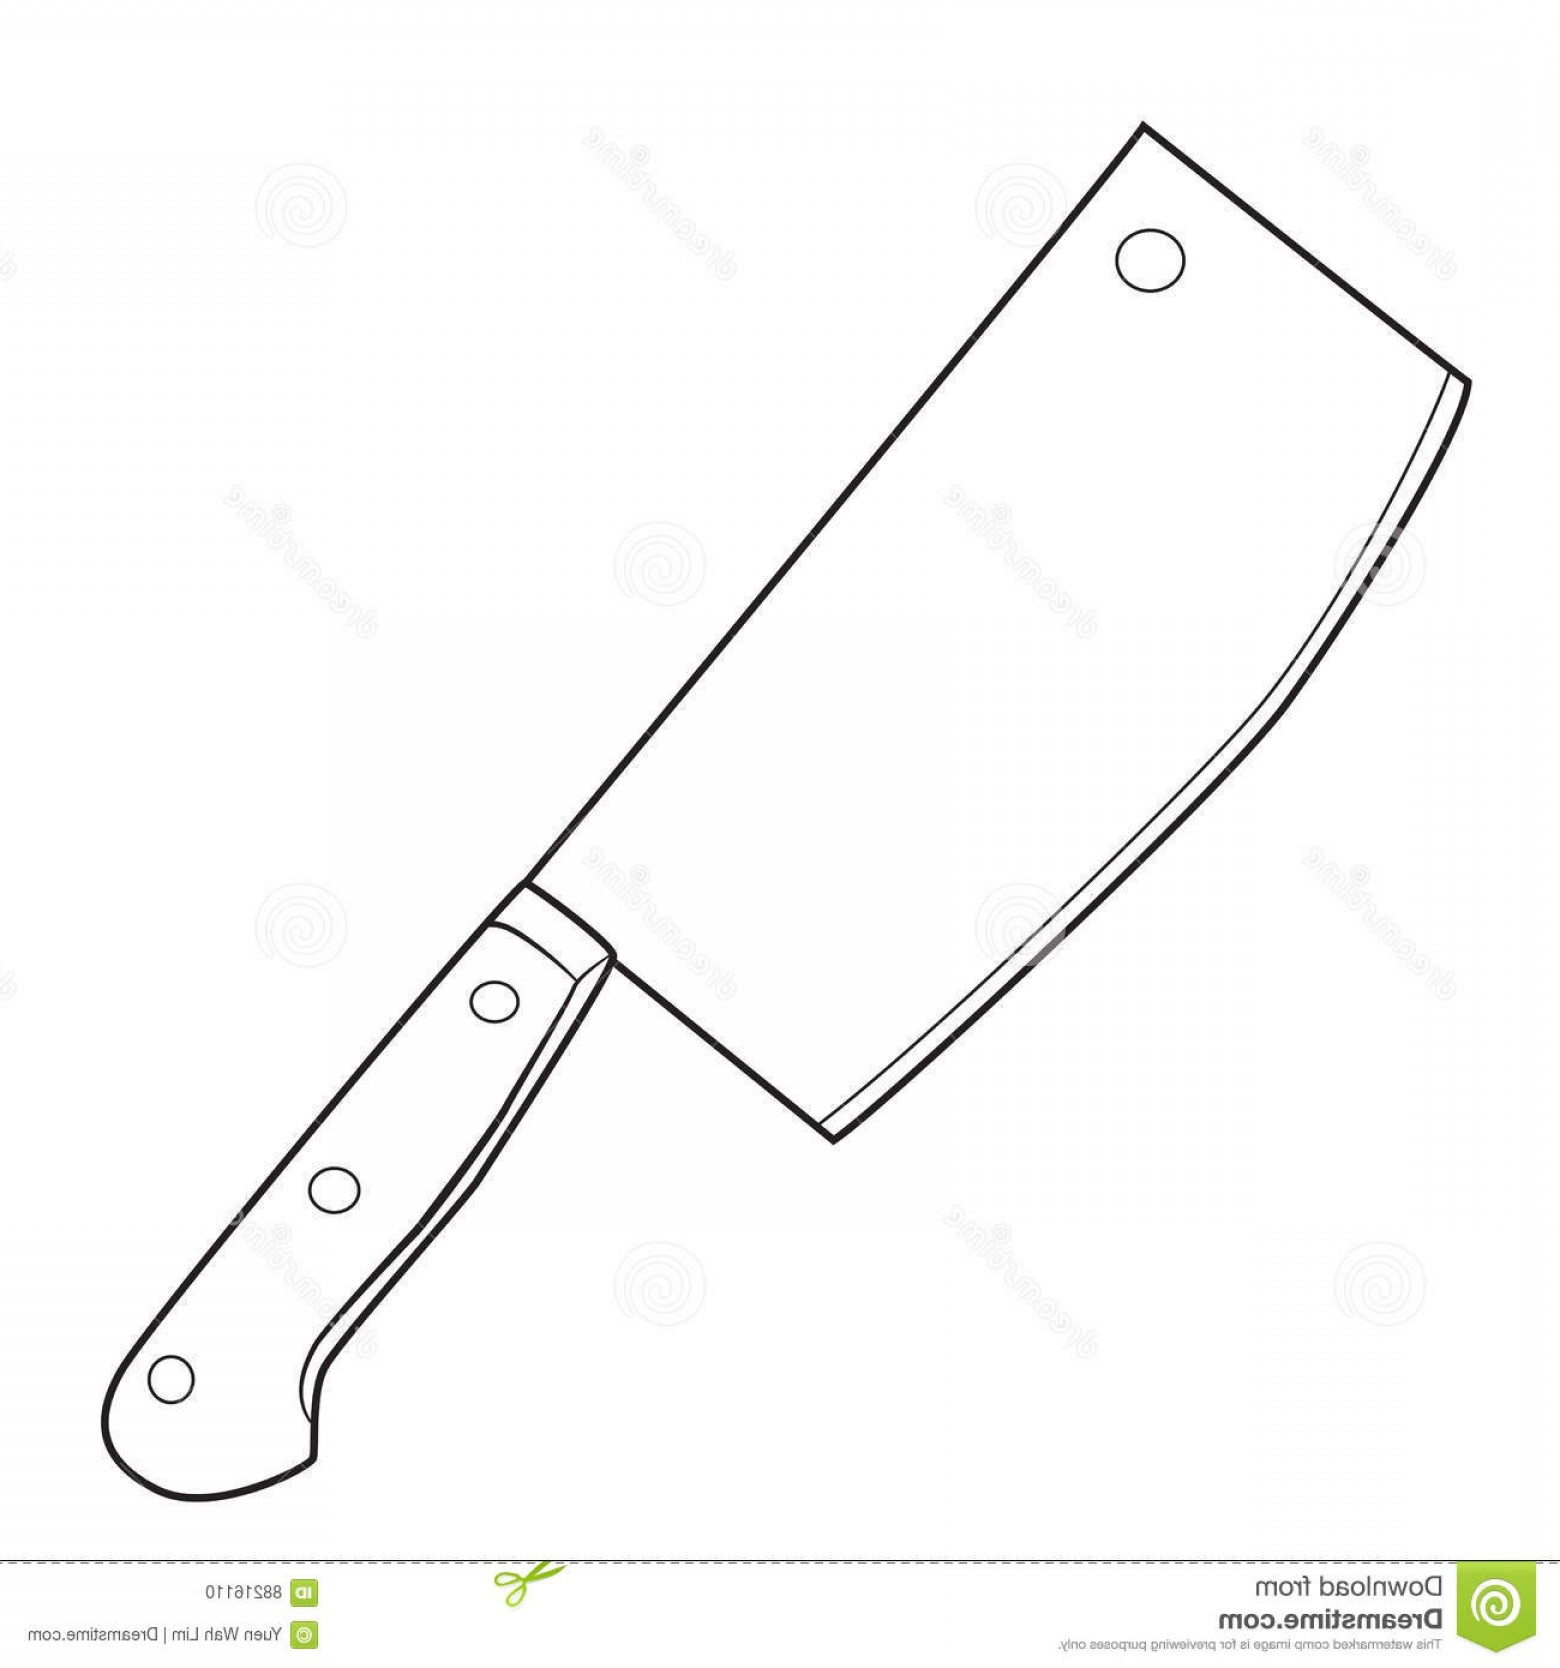 Butcher Knife Vector: Stock Illustration Isolated Butcher Knife Cartoon Drawing Illustration Vector Eps Image